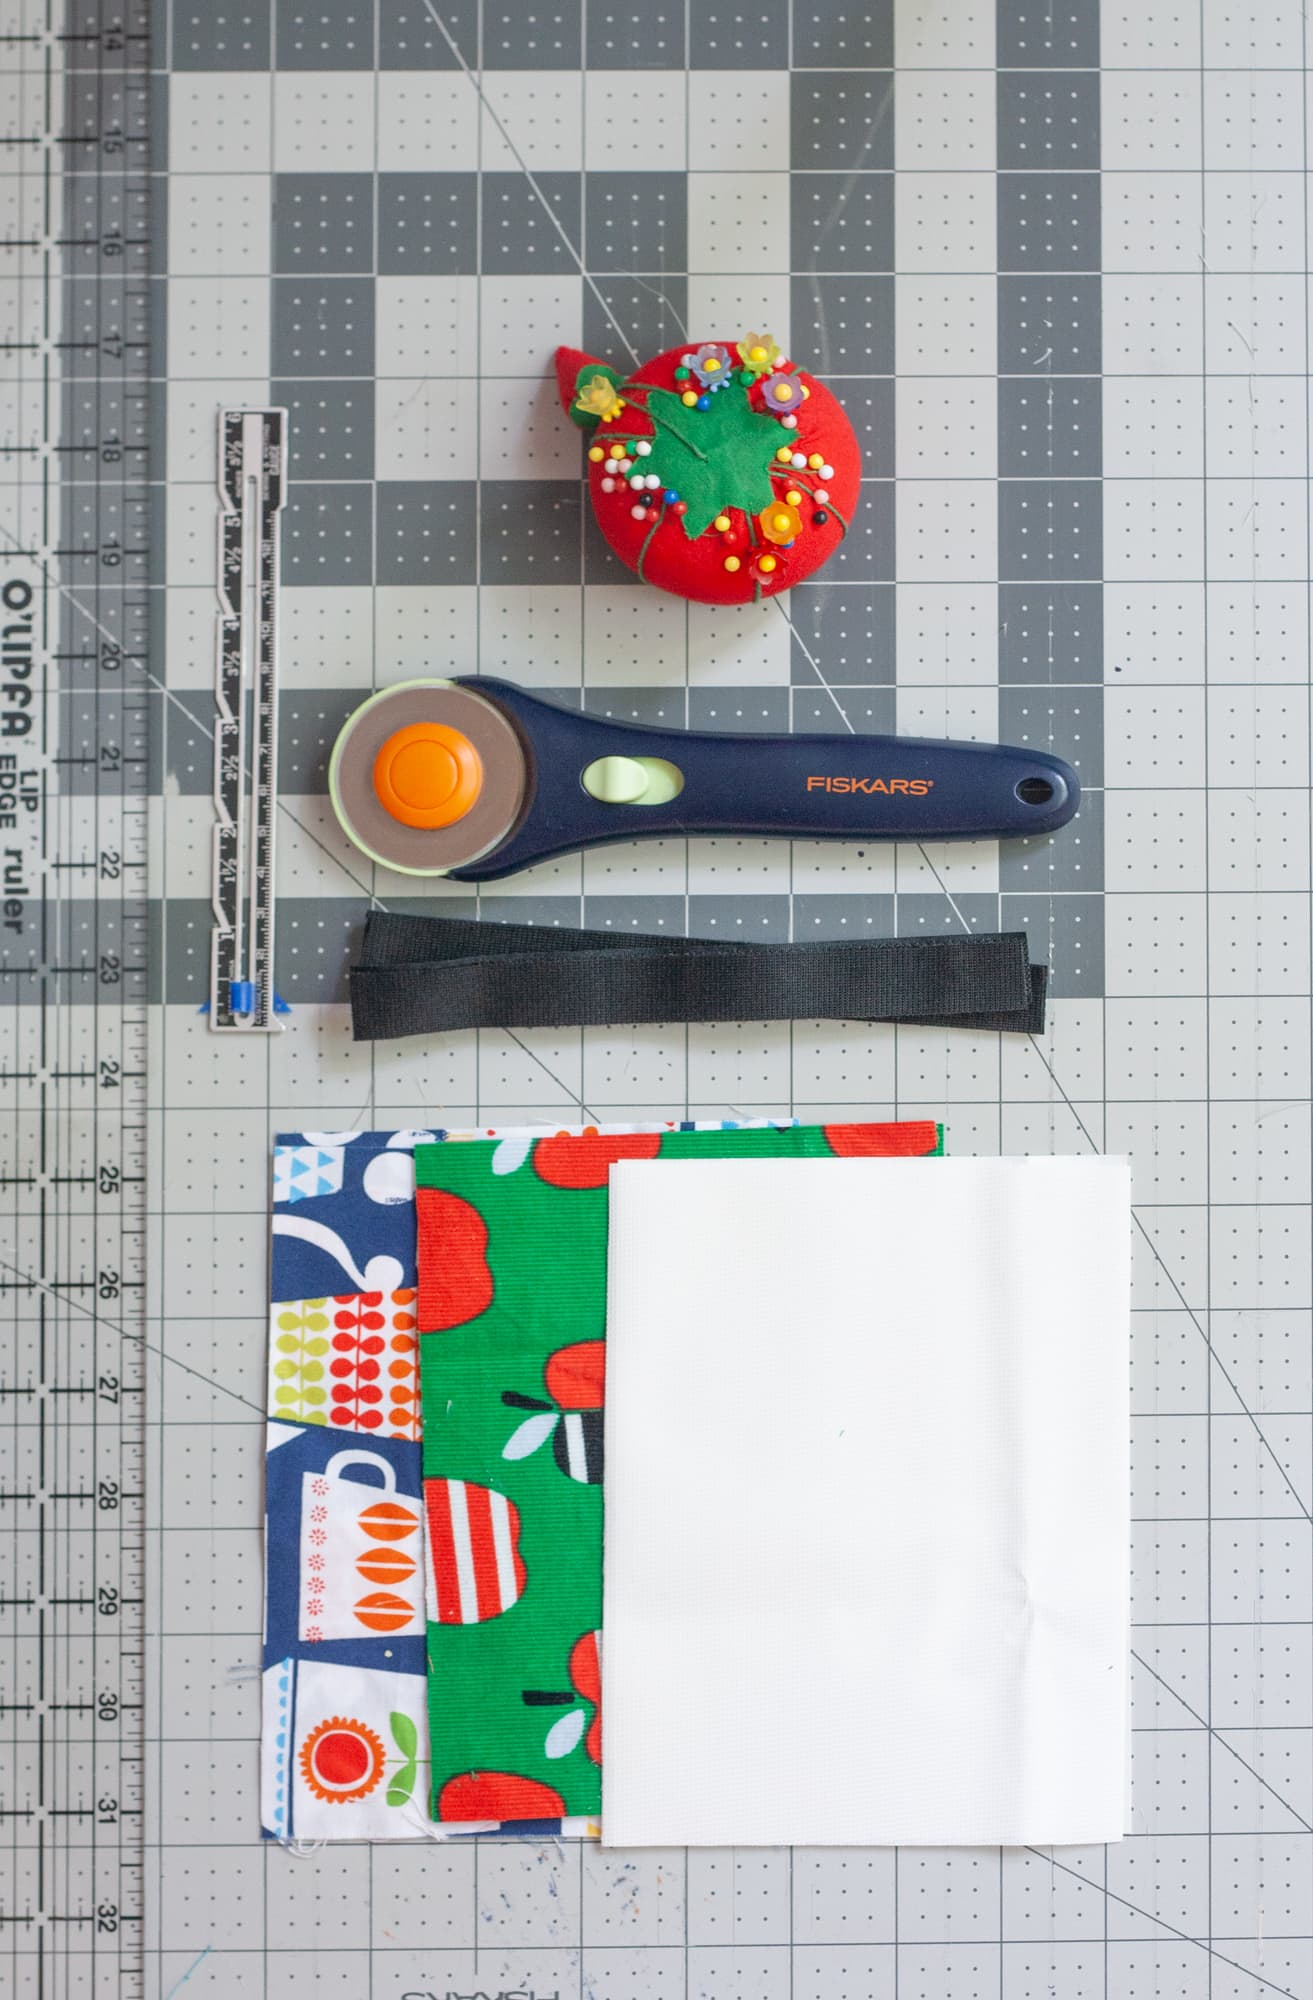 Sewing materials for reusable snack bags laid out on a cutting mat - rotary cutter, pin cushion, velcro, fabric, seam gauge, ruler